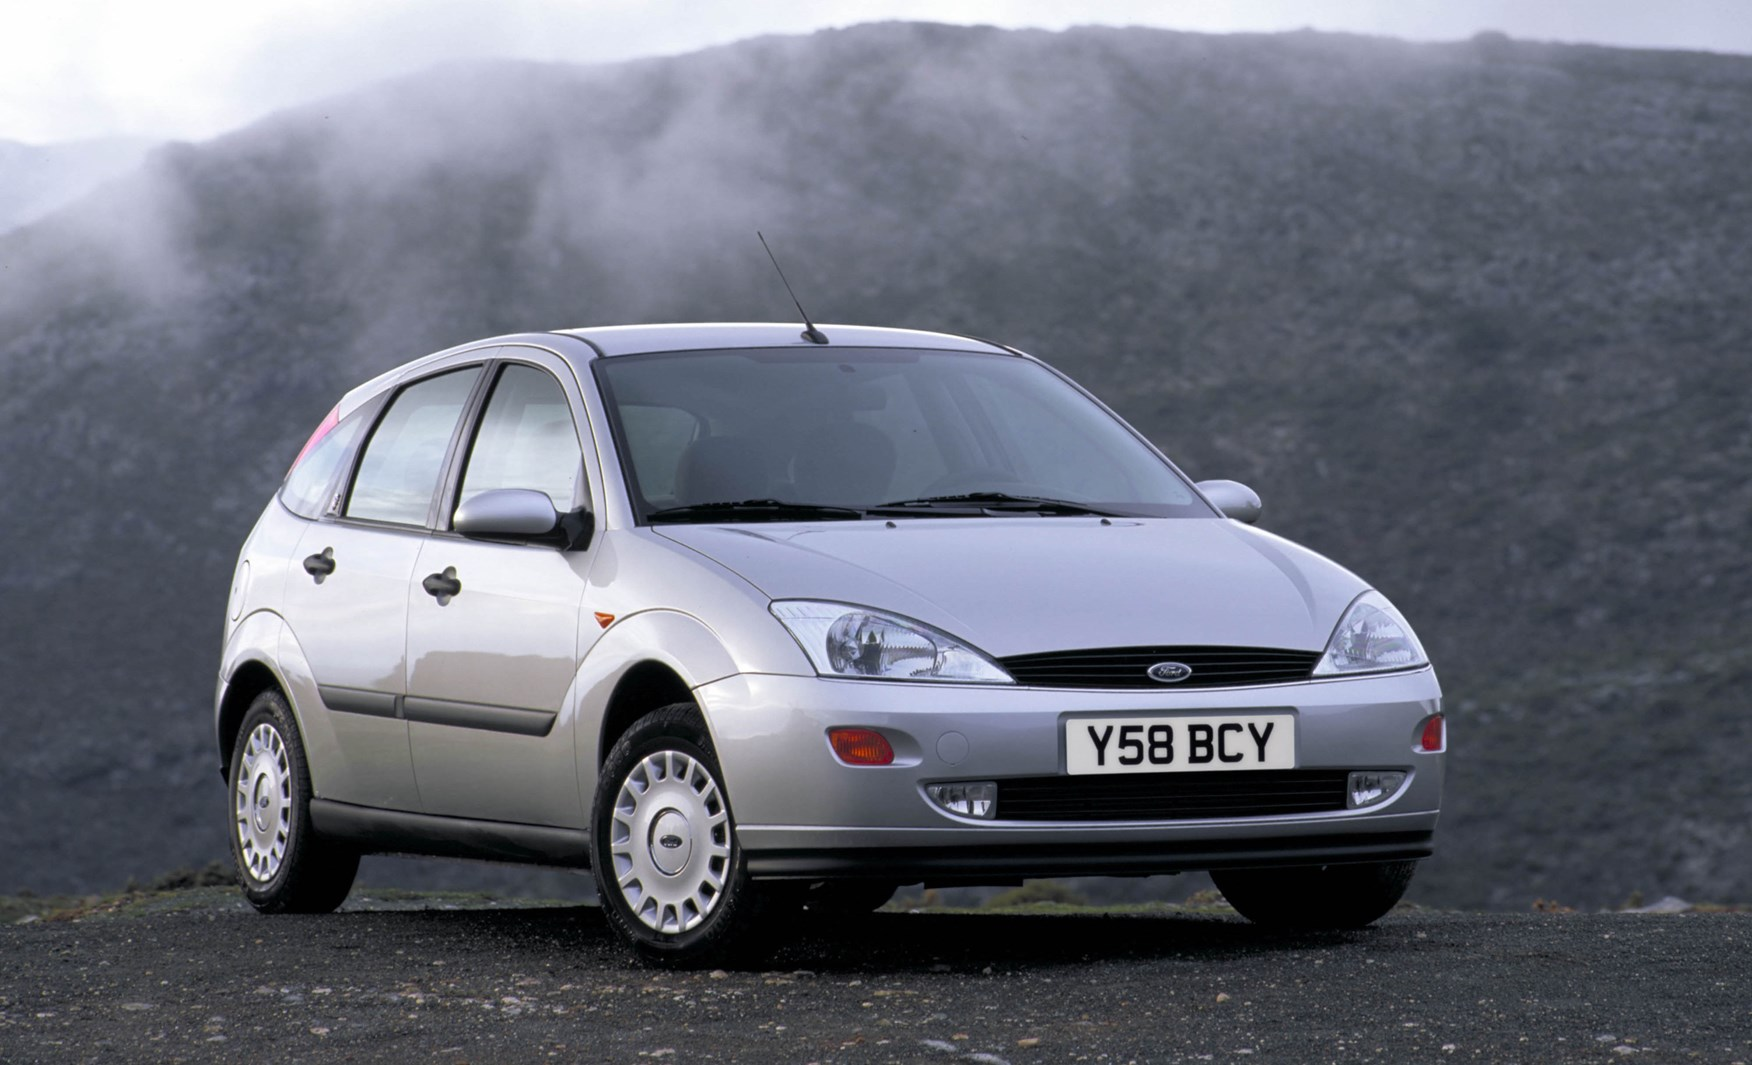 Ford Fiesta Hatchback >> Ford Focus Hatchback Review (1998 - 2004) | Parkers